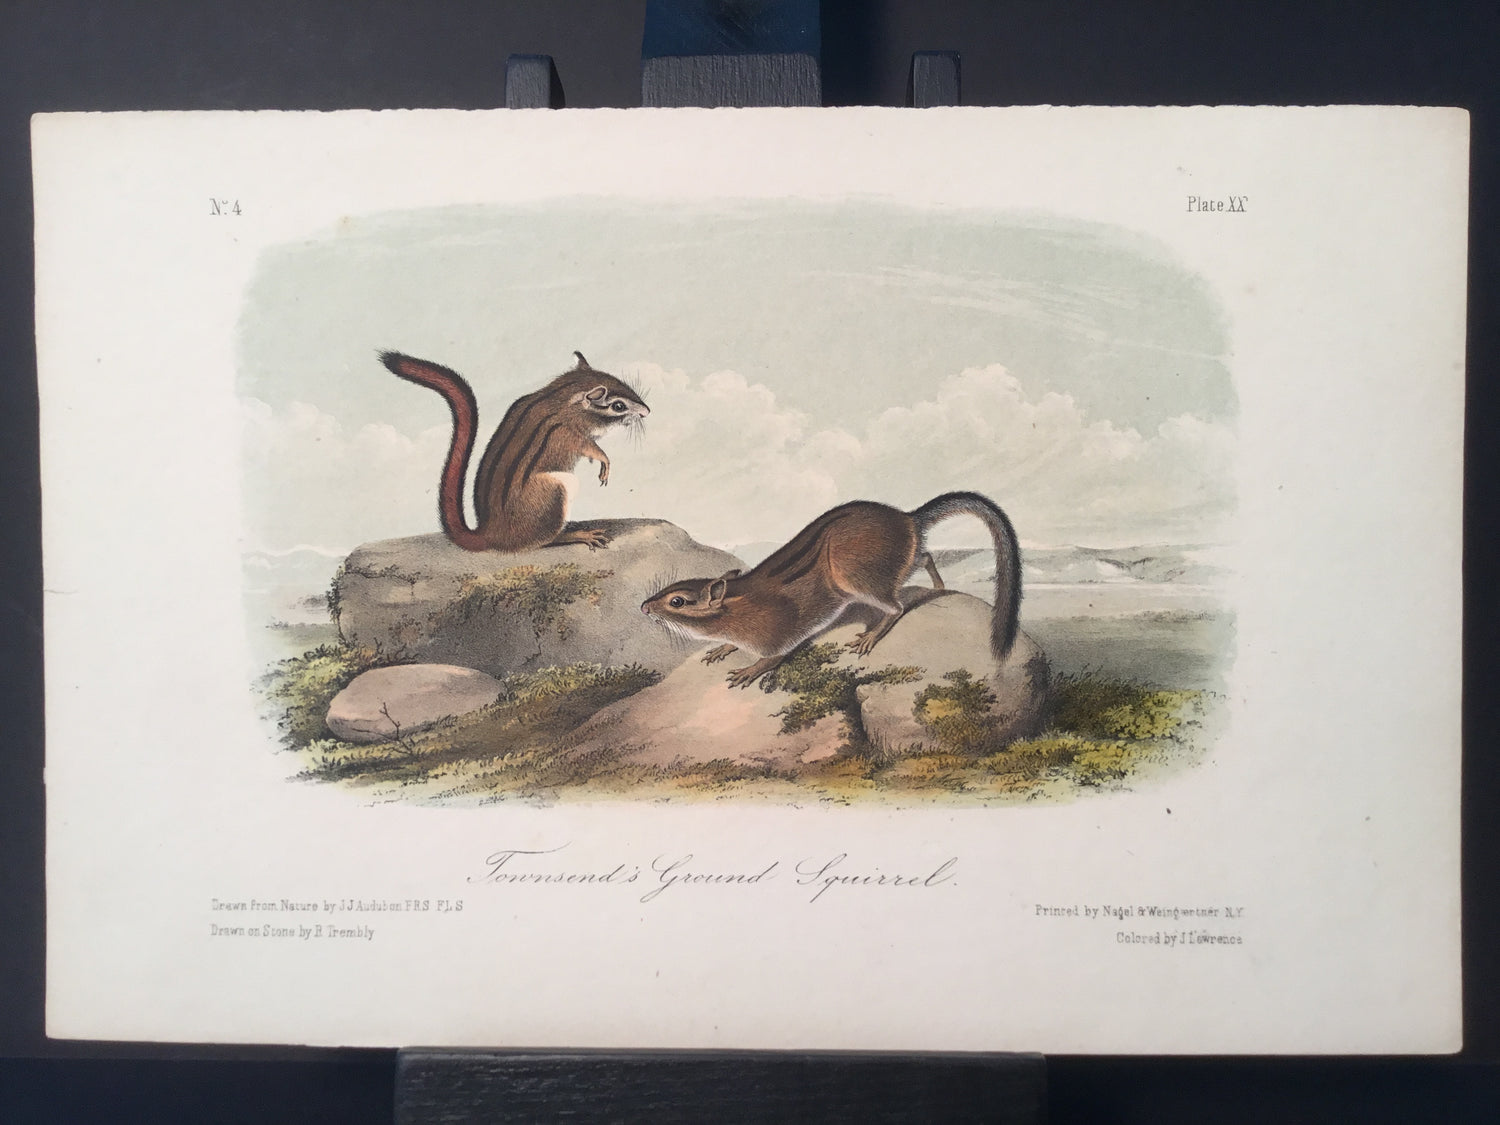 Lord-Hopkins Collection - Townsend's Ground Squirrel